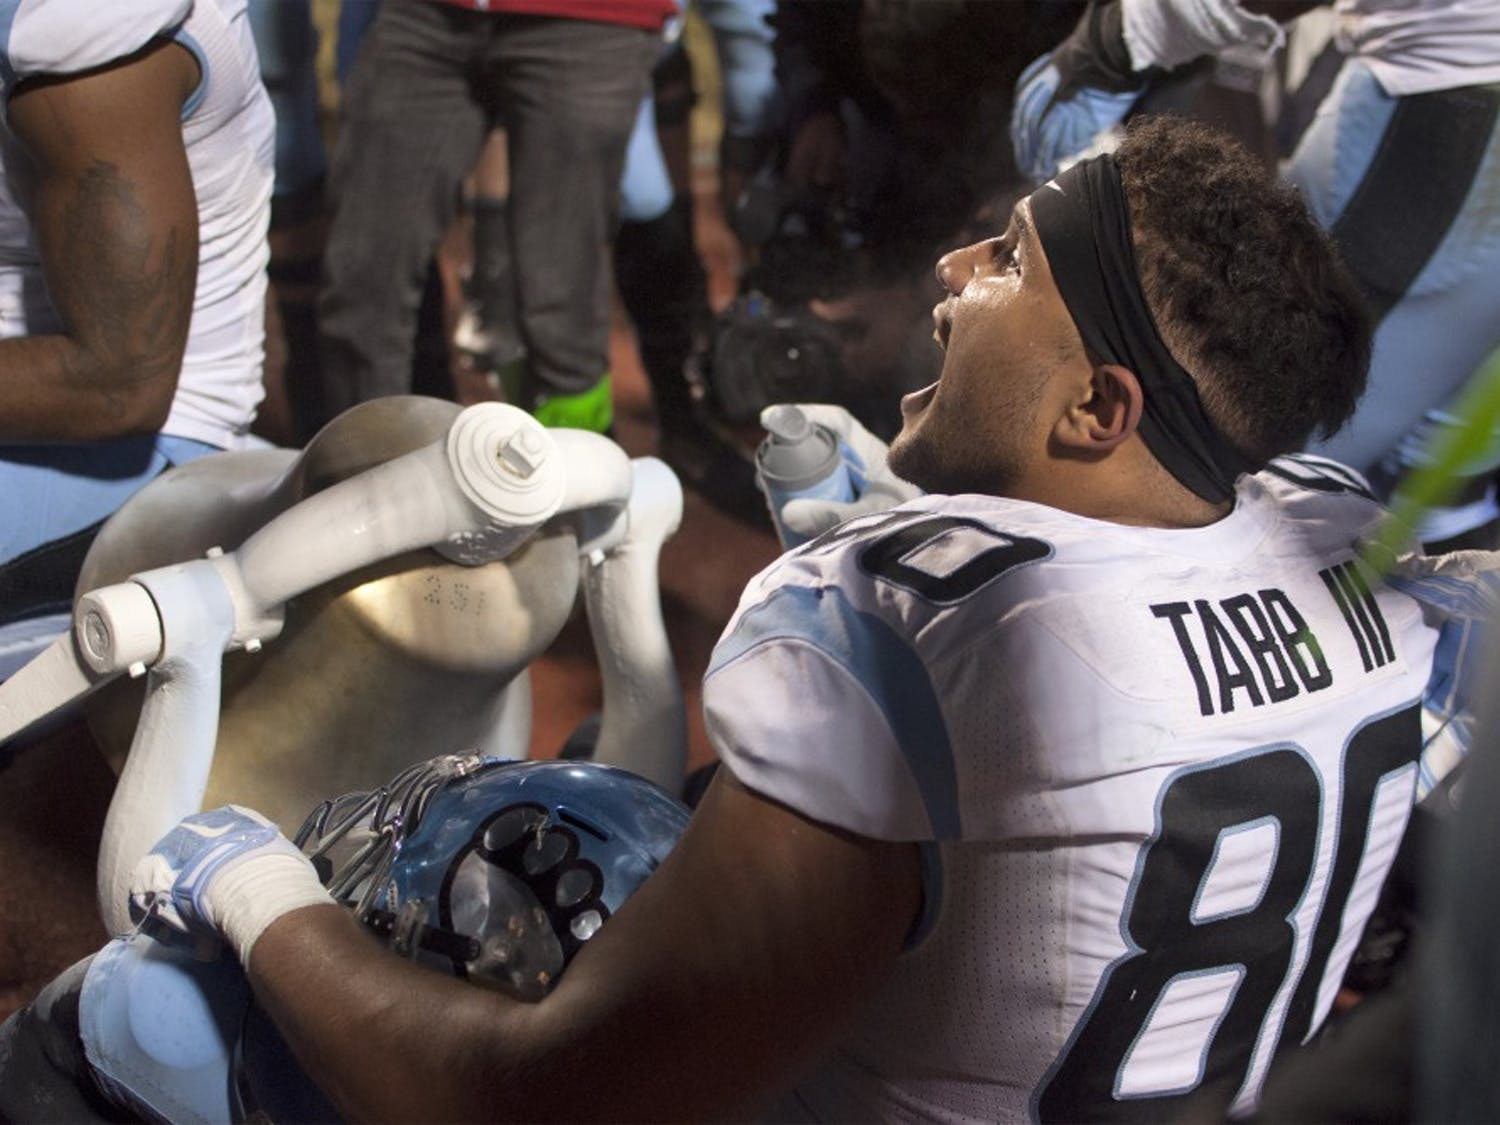 For the first time in three years, the Tar Heels defeated the Duke Blue Devils and will bring the Victory Bell back to Chapel Hill — painted a lighter shade of blue.